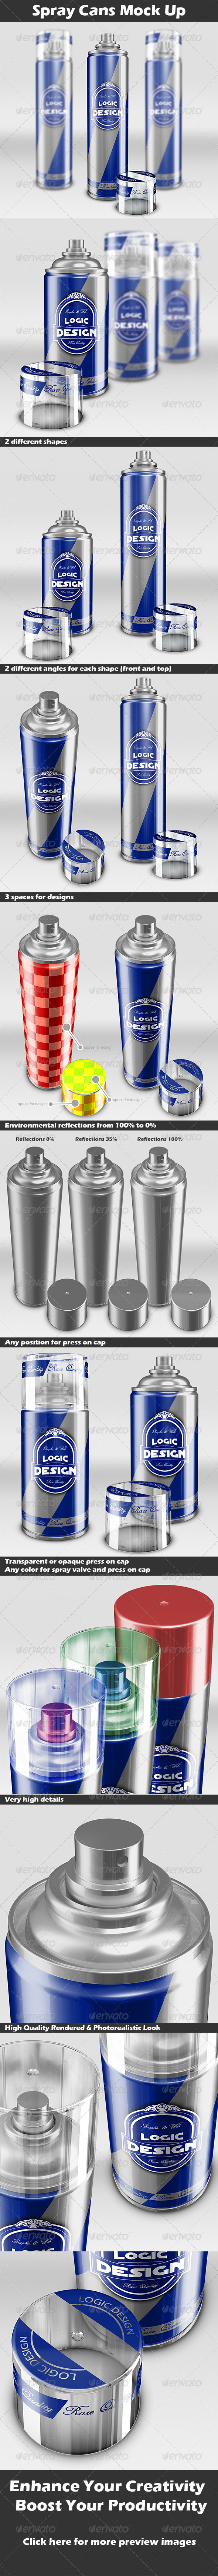 GraphicRiver Spray Cans Mock Up 4405617